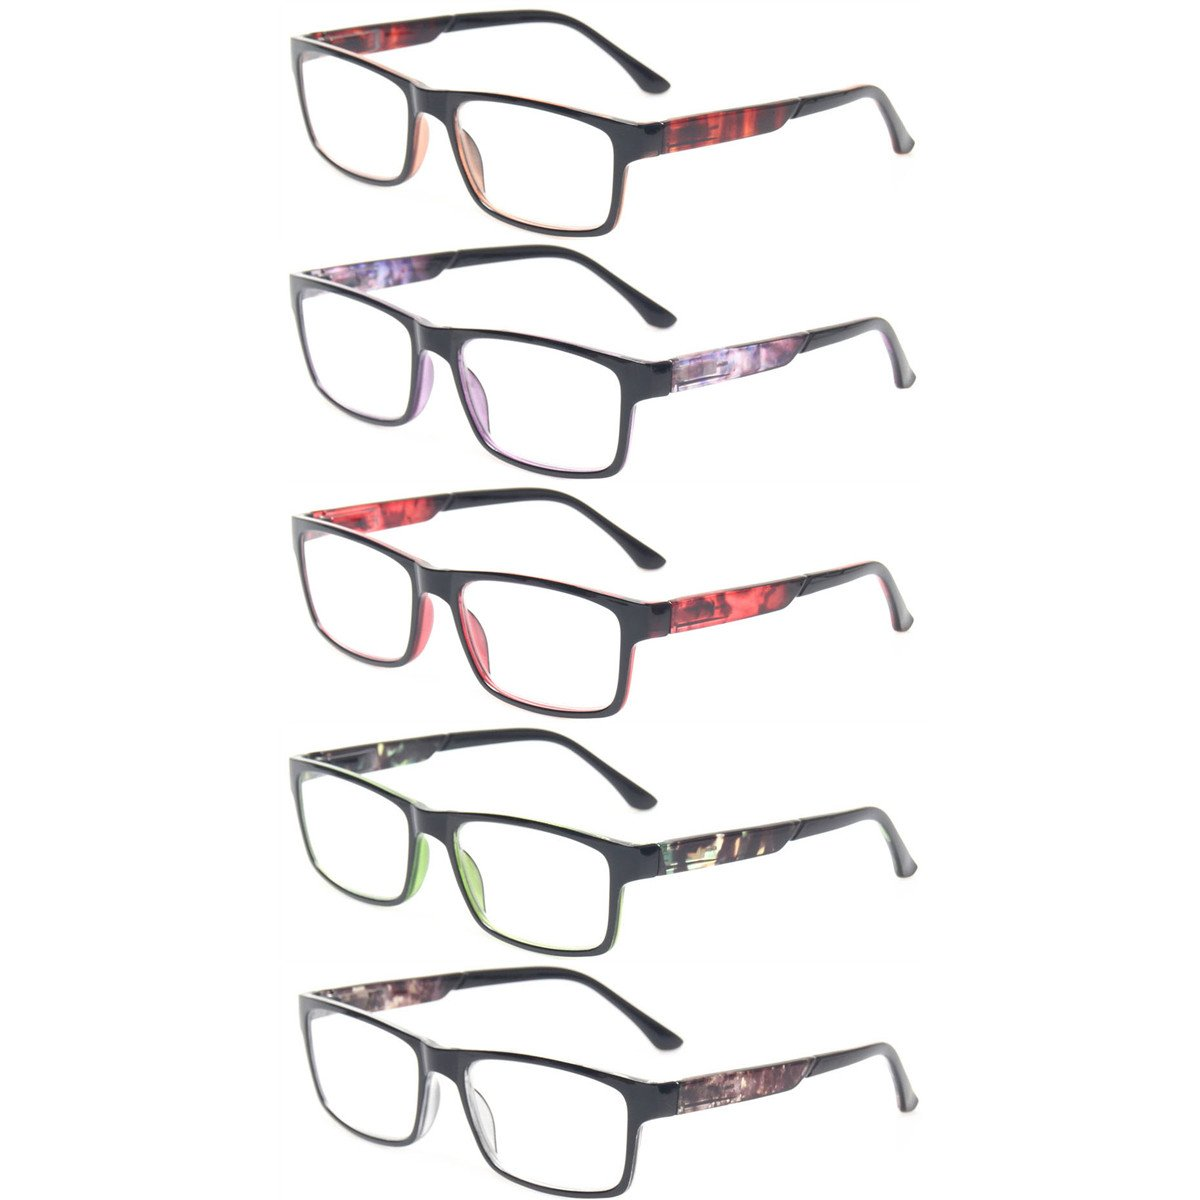 Reading Glasses 5 Pack Spring Hinge Rectangular Readers Quality Fashion Glasses (5 Pack Mix Color, 1.25) by Kerecsen